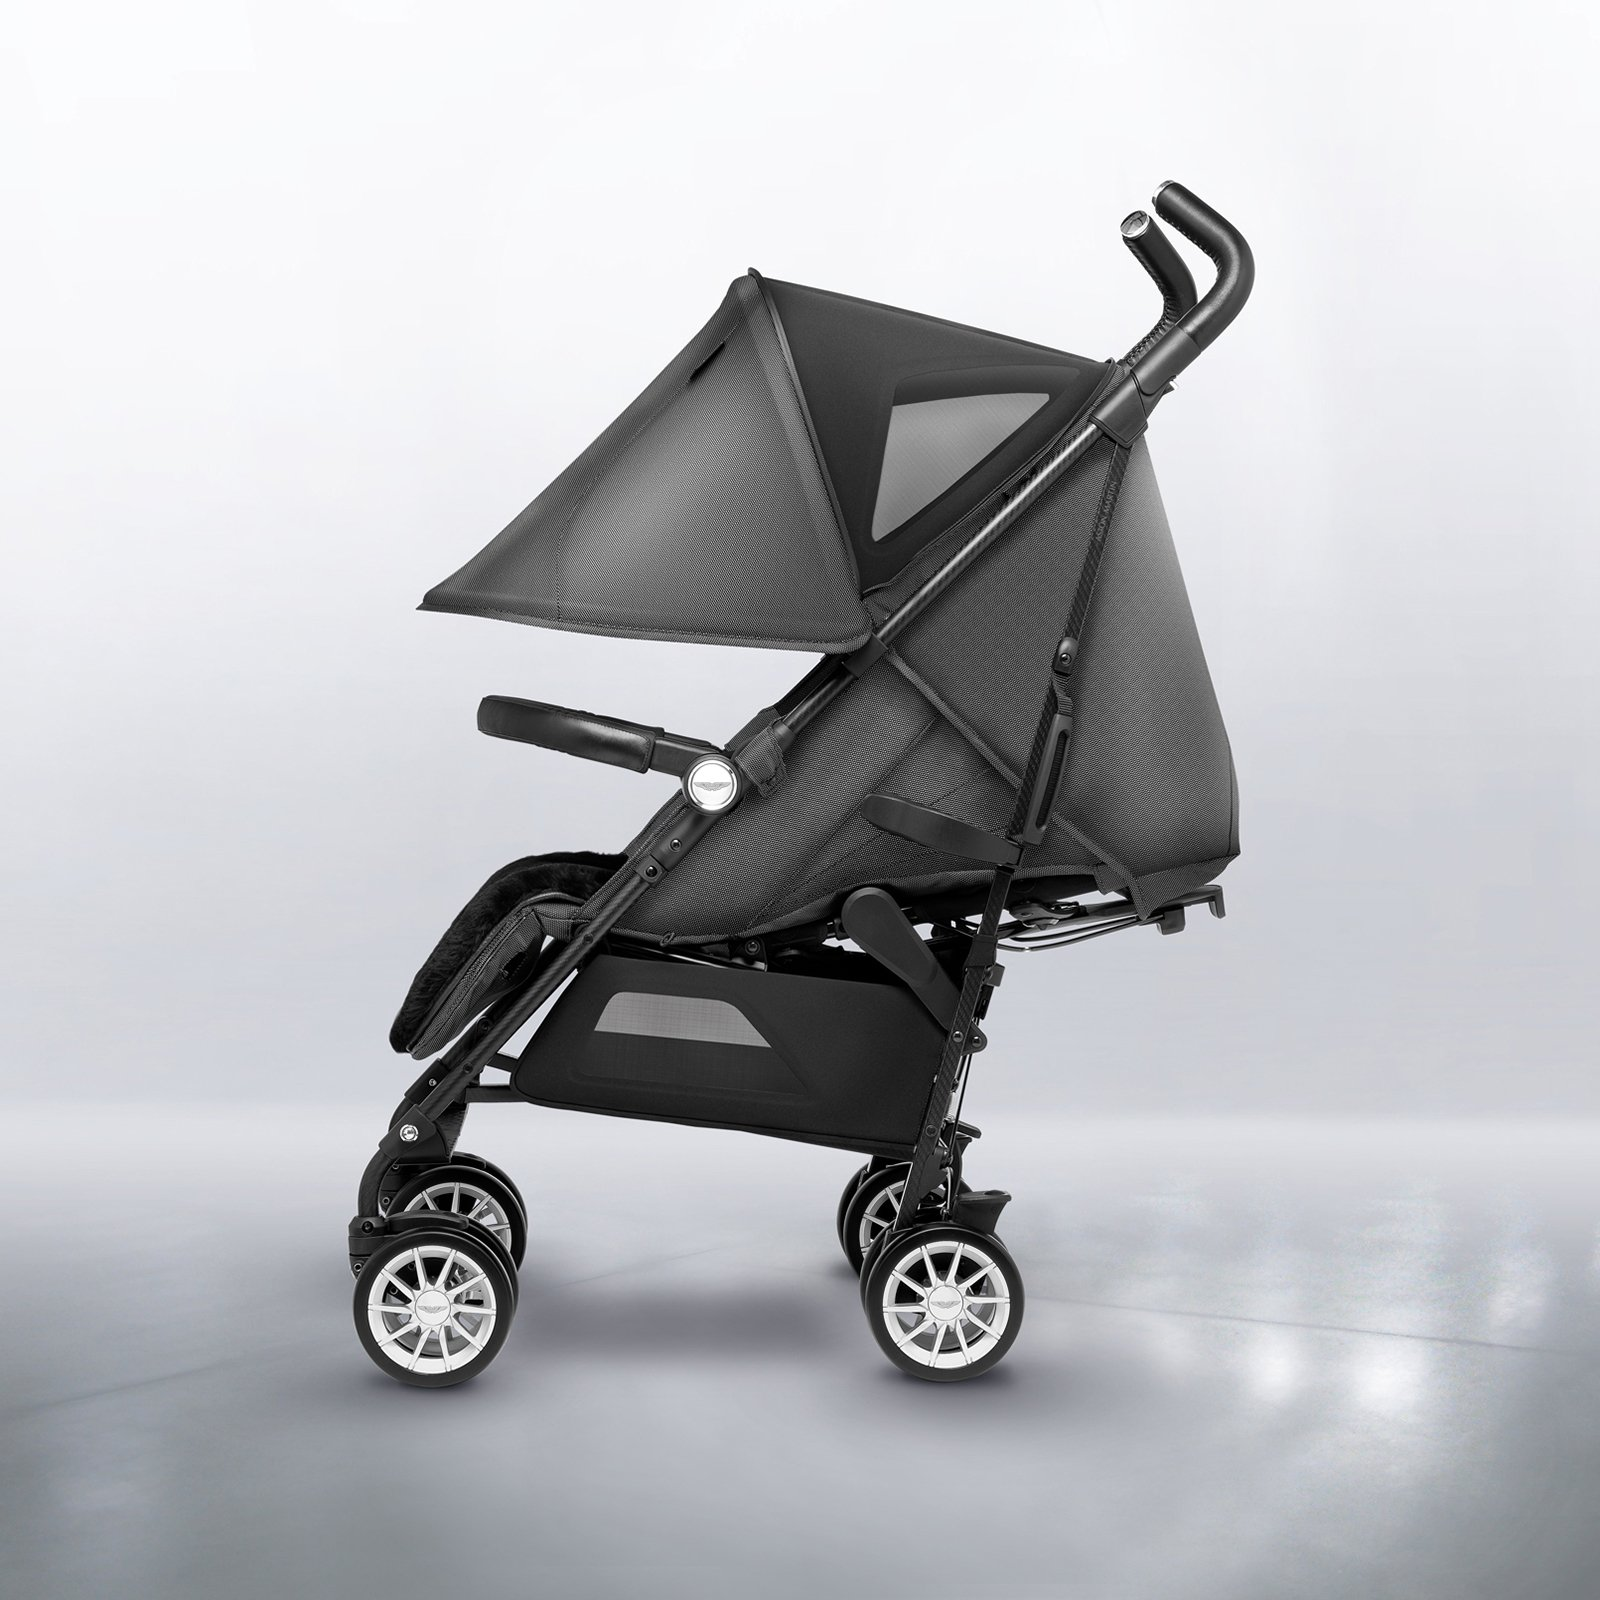 Silver Cross On Twitter Dream Pushchair Alert Have You Discovered The Reflex Aston Martin Part Of Our Exclusive Collaboration With The Iconic Car Brand It Offers The Ultimate In Stroller Luxury Silvercross